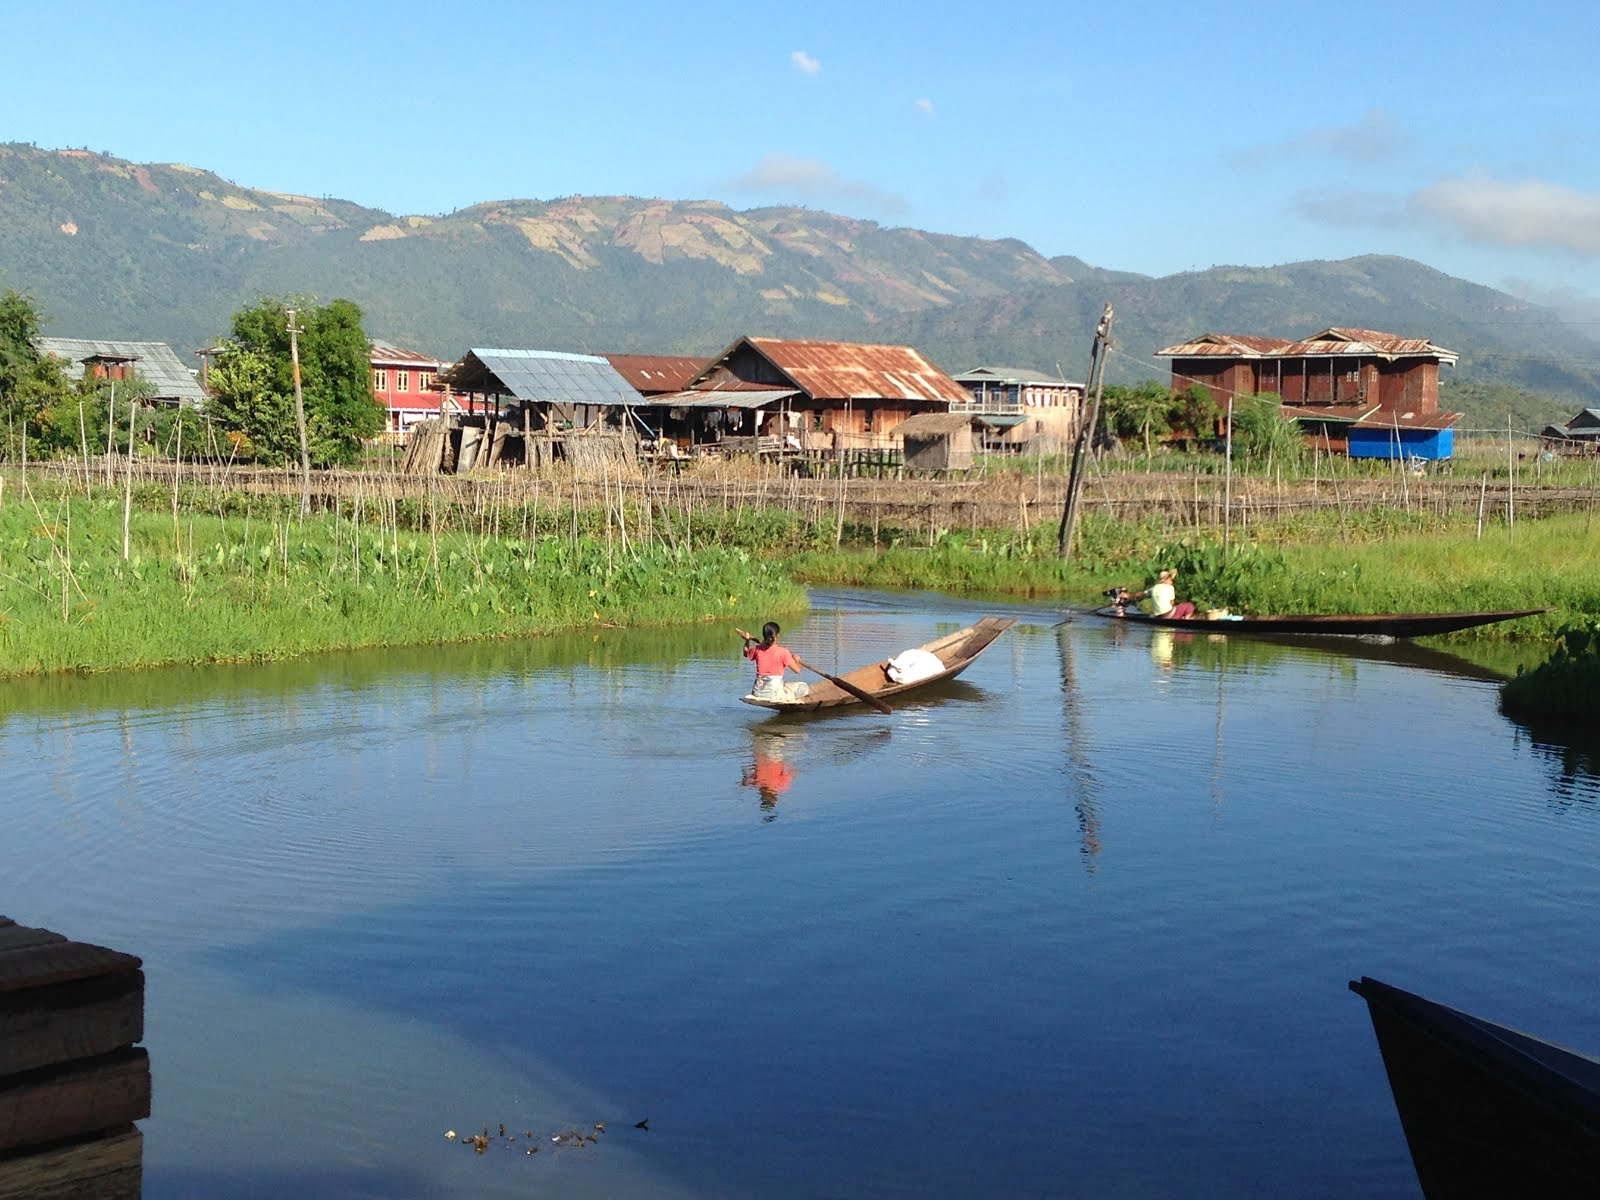 Stilt village, Inle Lake